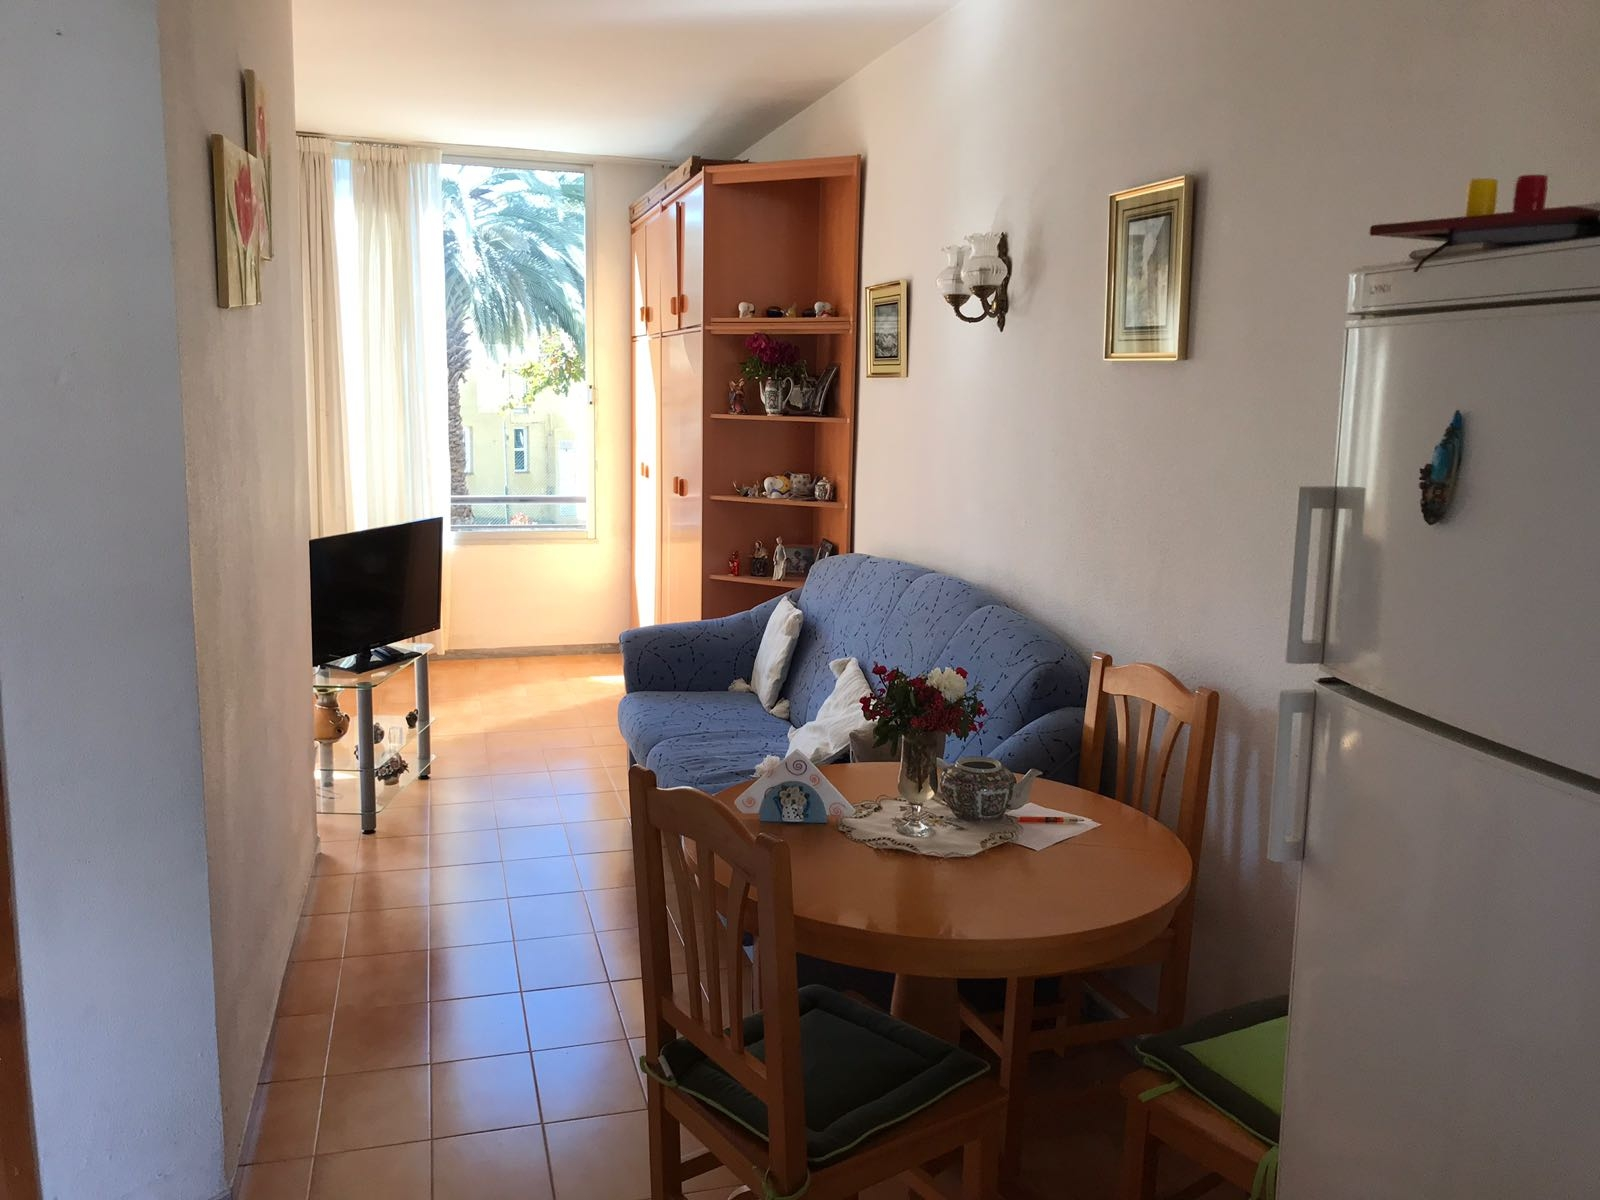 Properties for Sale in Tenerife, Canary Islands, Spain | SylkWayStar Real Estate. 1 Bedroom apartment Los Agaves. Image-22289